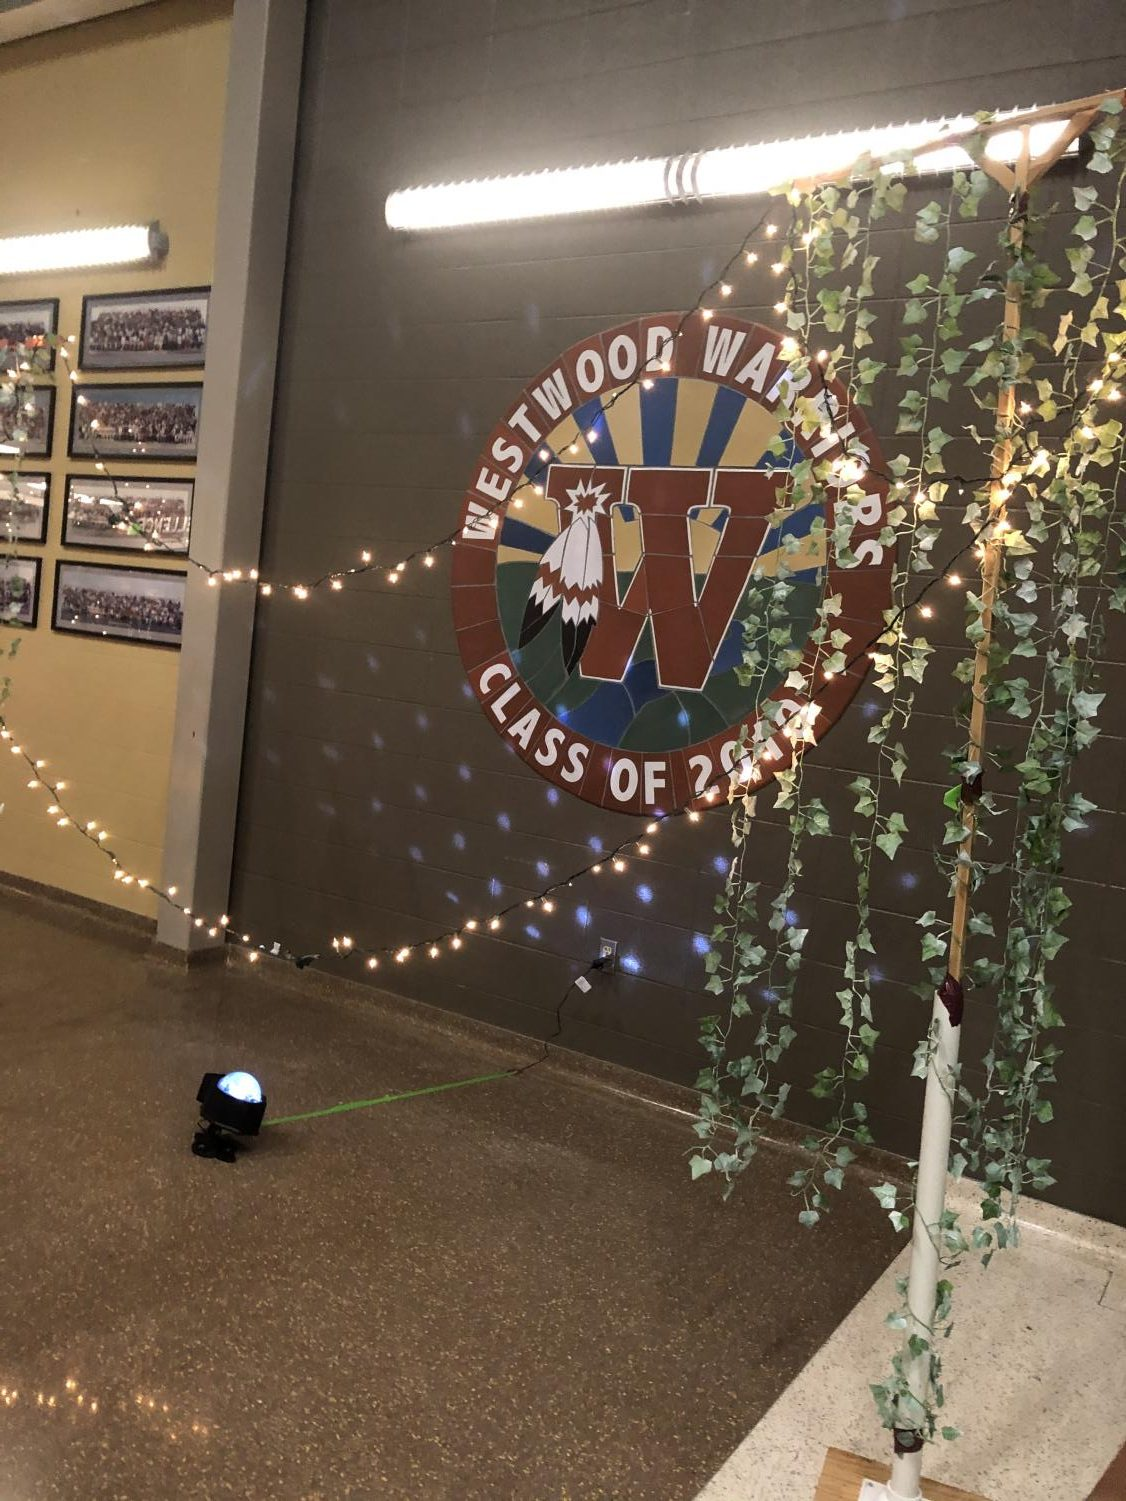 Students+set+up+lights+and+decorations+in+the+hallways+before+the+ball+begins.+%0APhoto+courtesy+of+Anaita+Merchant